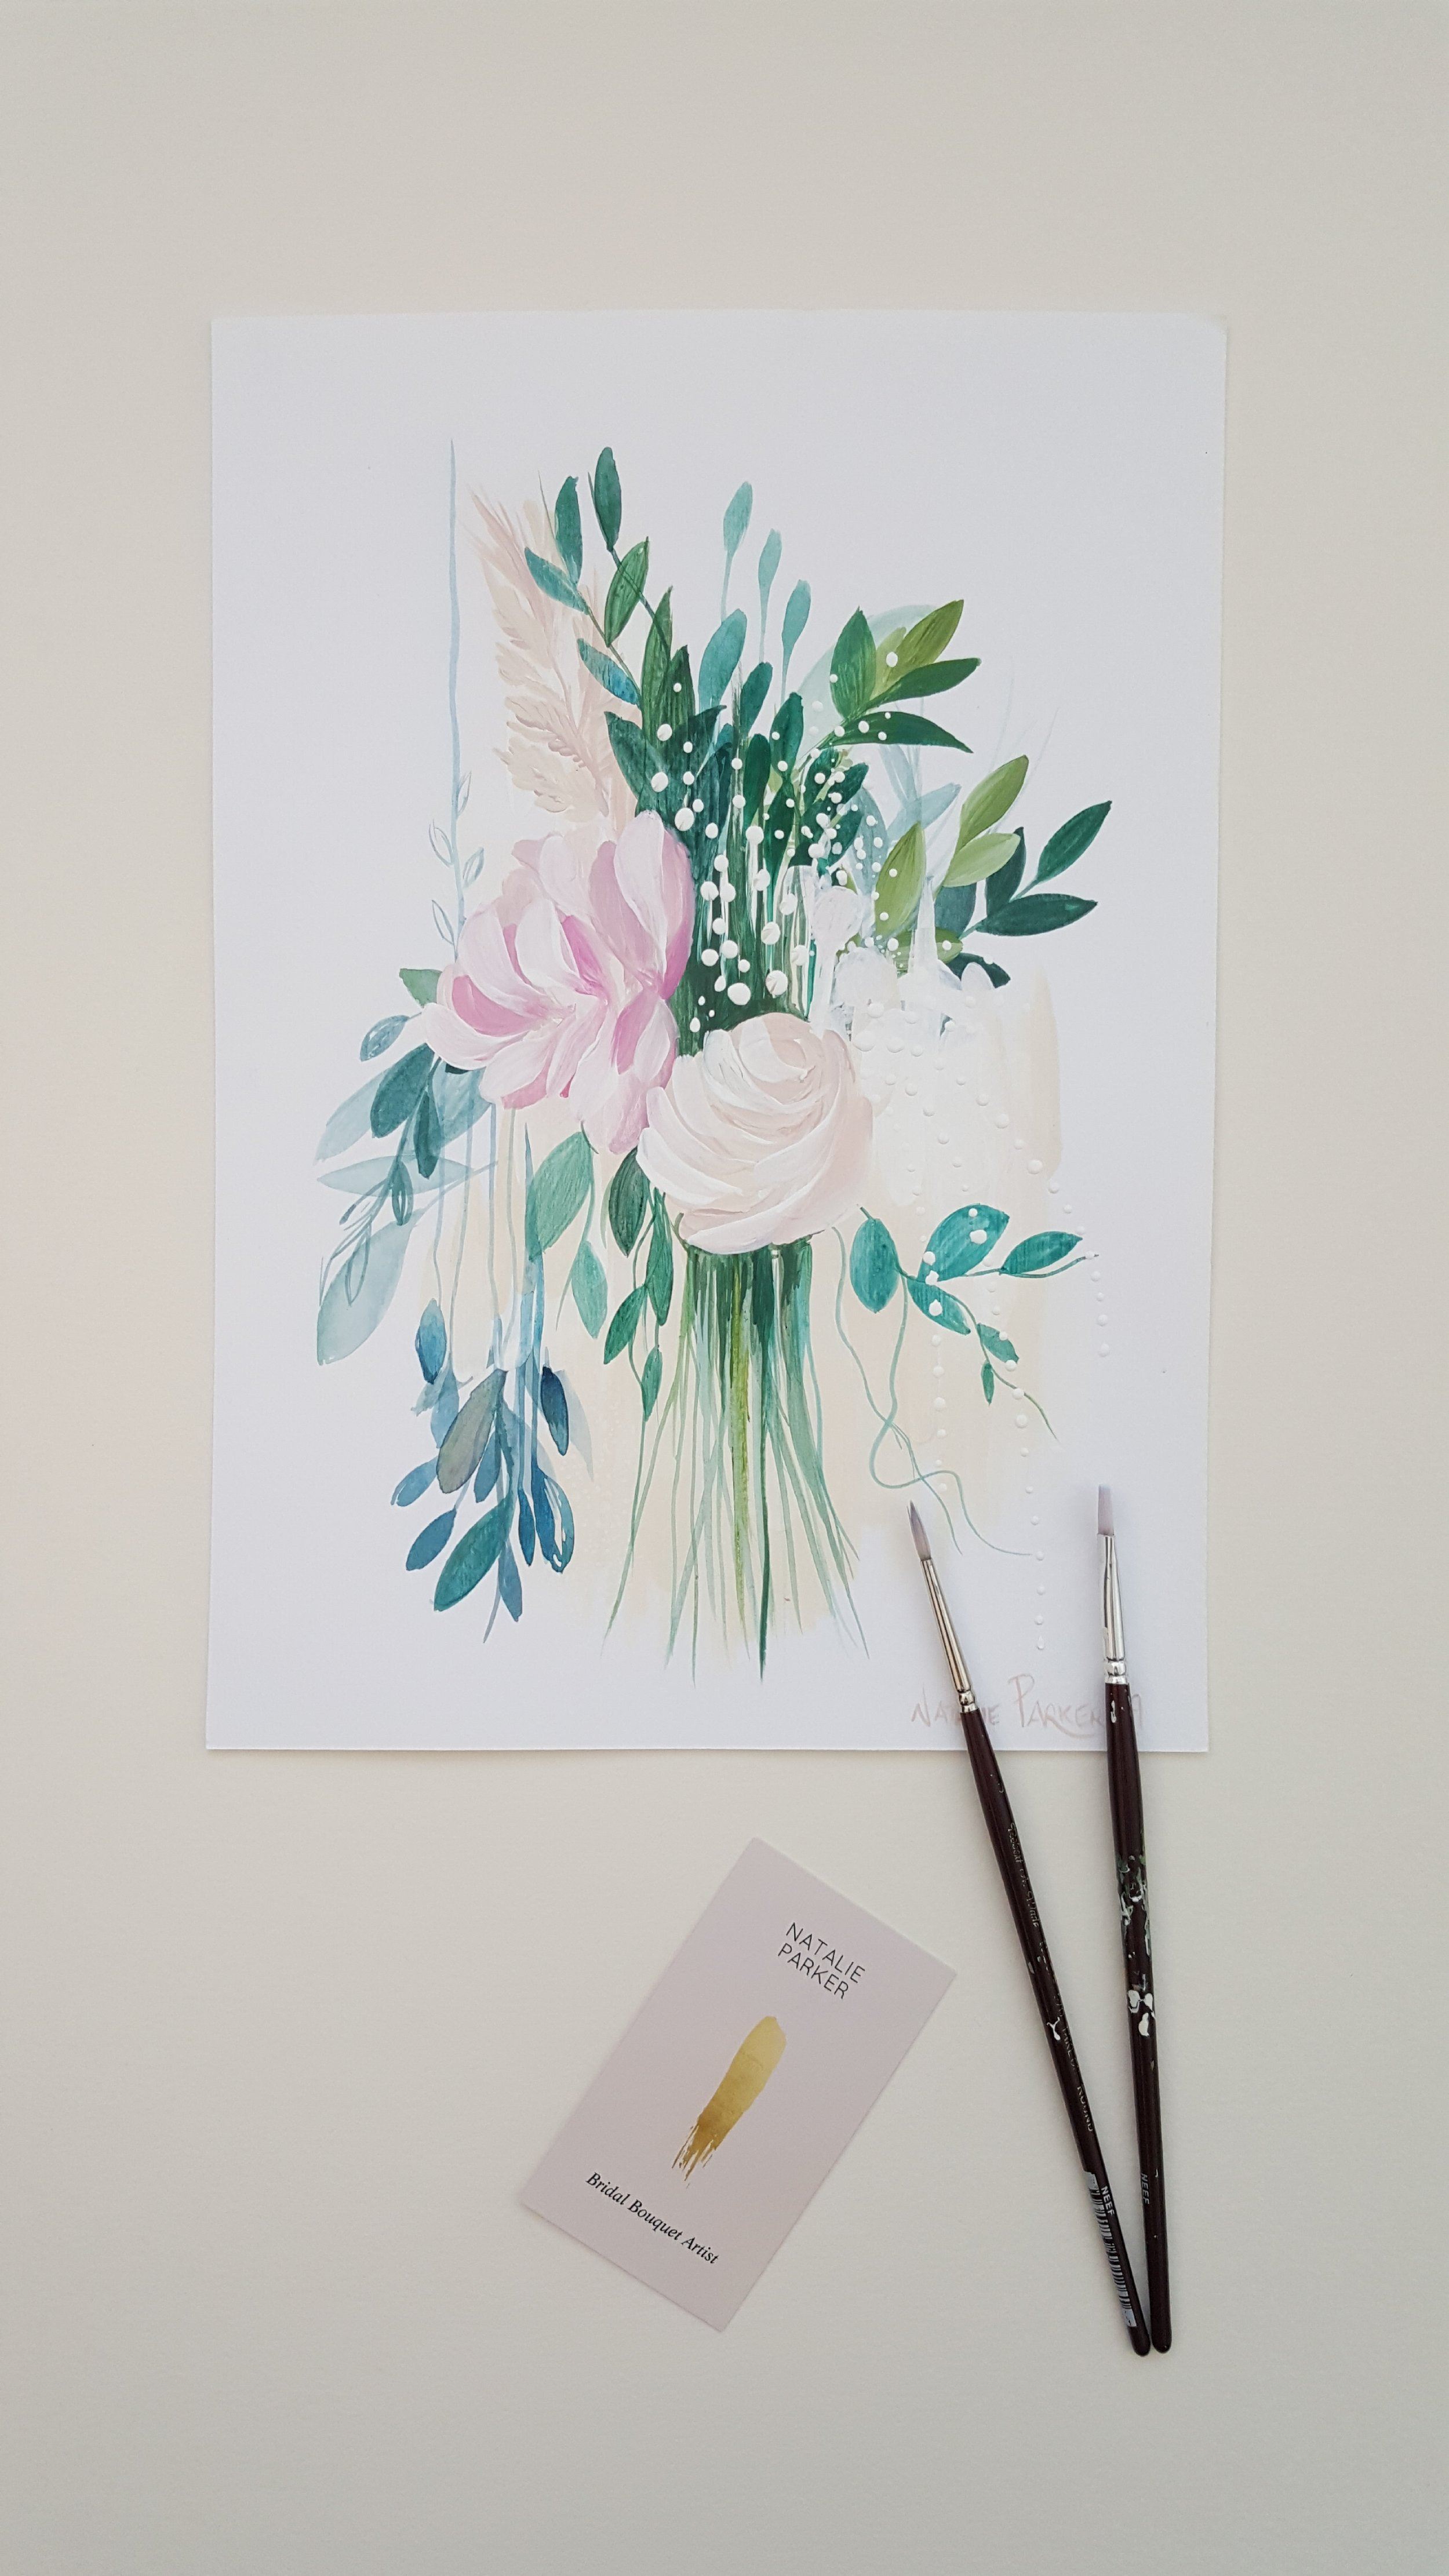 https://www.natalieparkerartist.com/30daysofbouquets/painting-28-30-days-of-bouquets